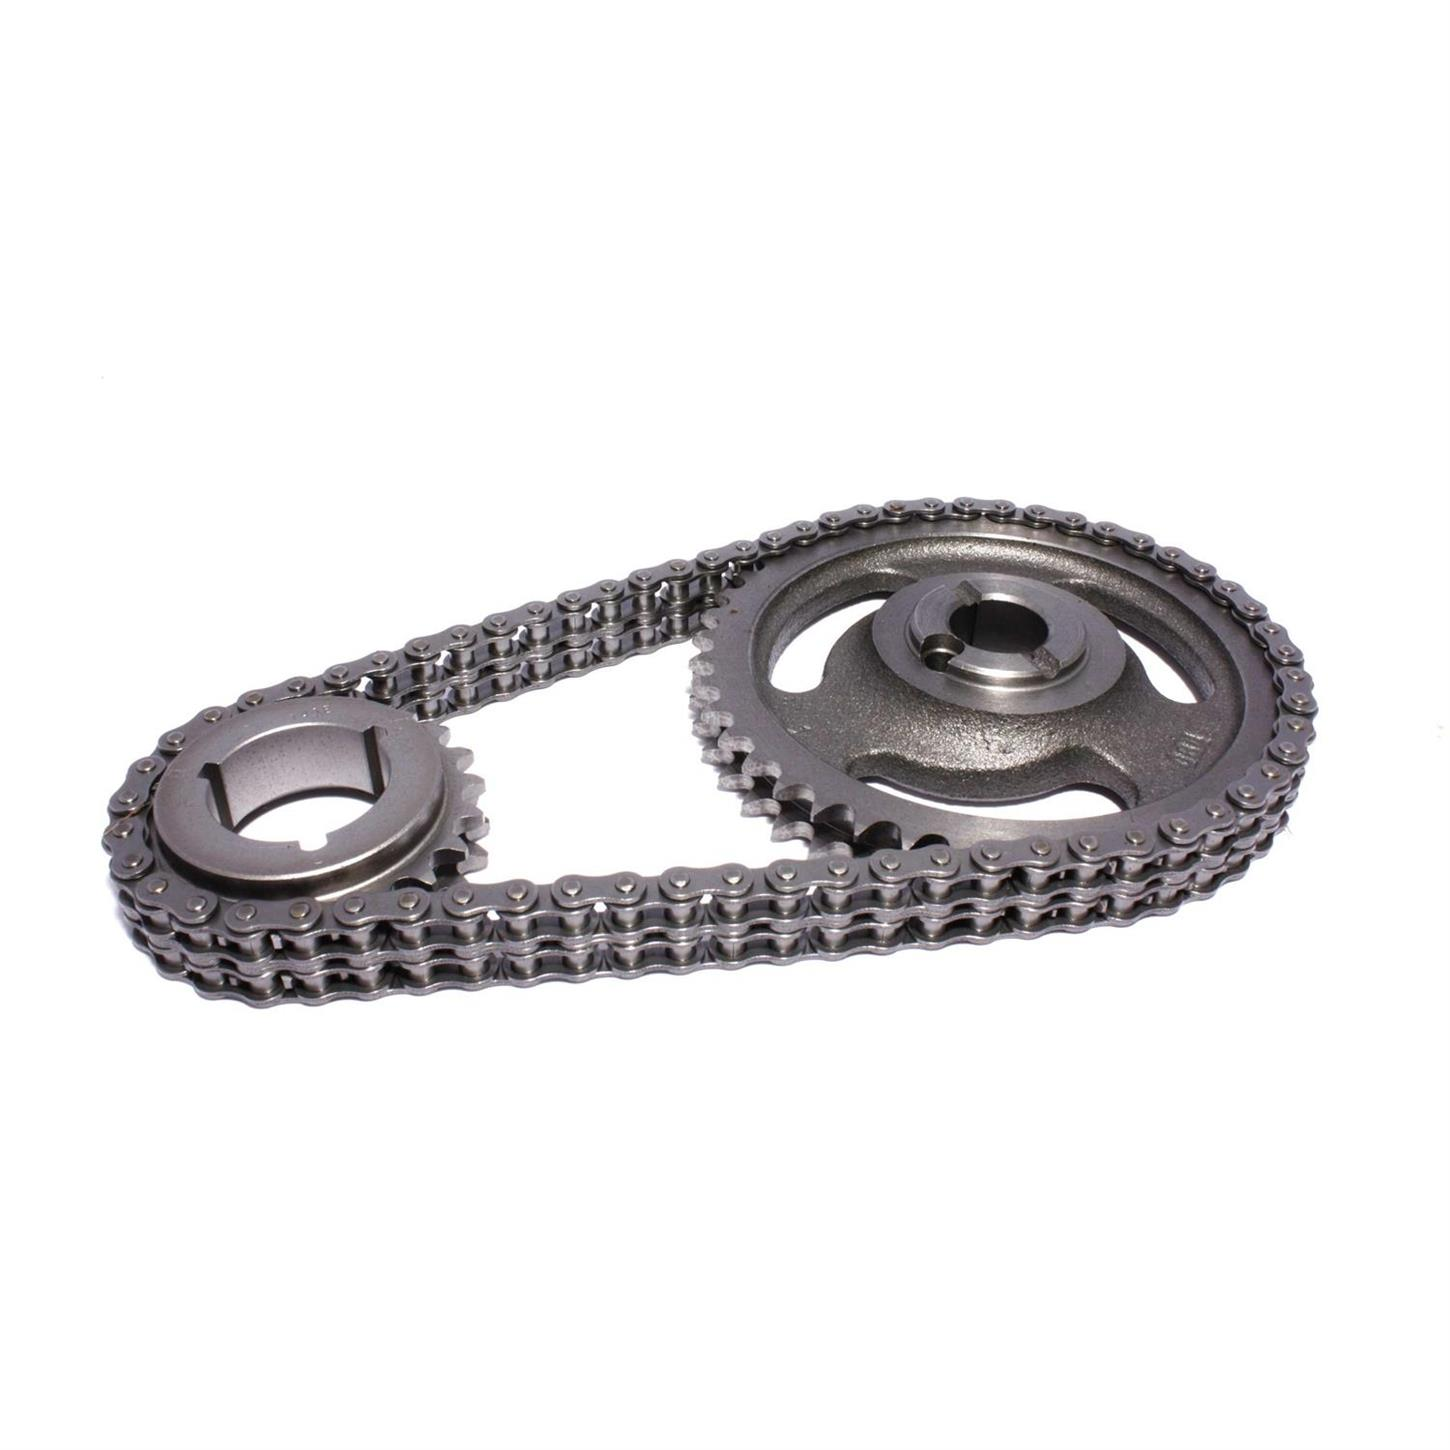 Comp Cams 2122 Magnum Double Roller Timing Chain Set Ford 429 460 A Engine